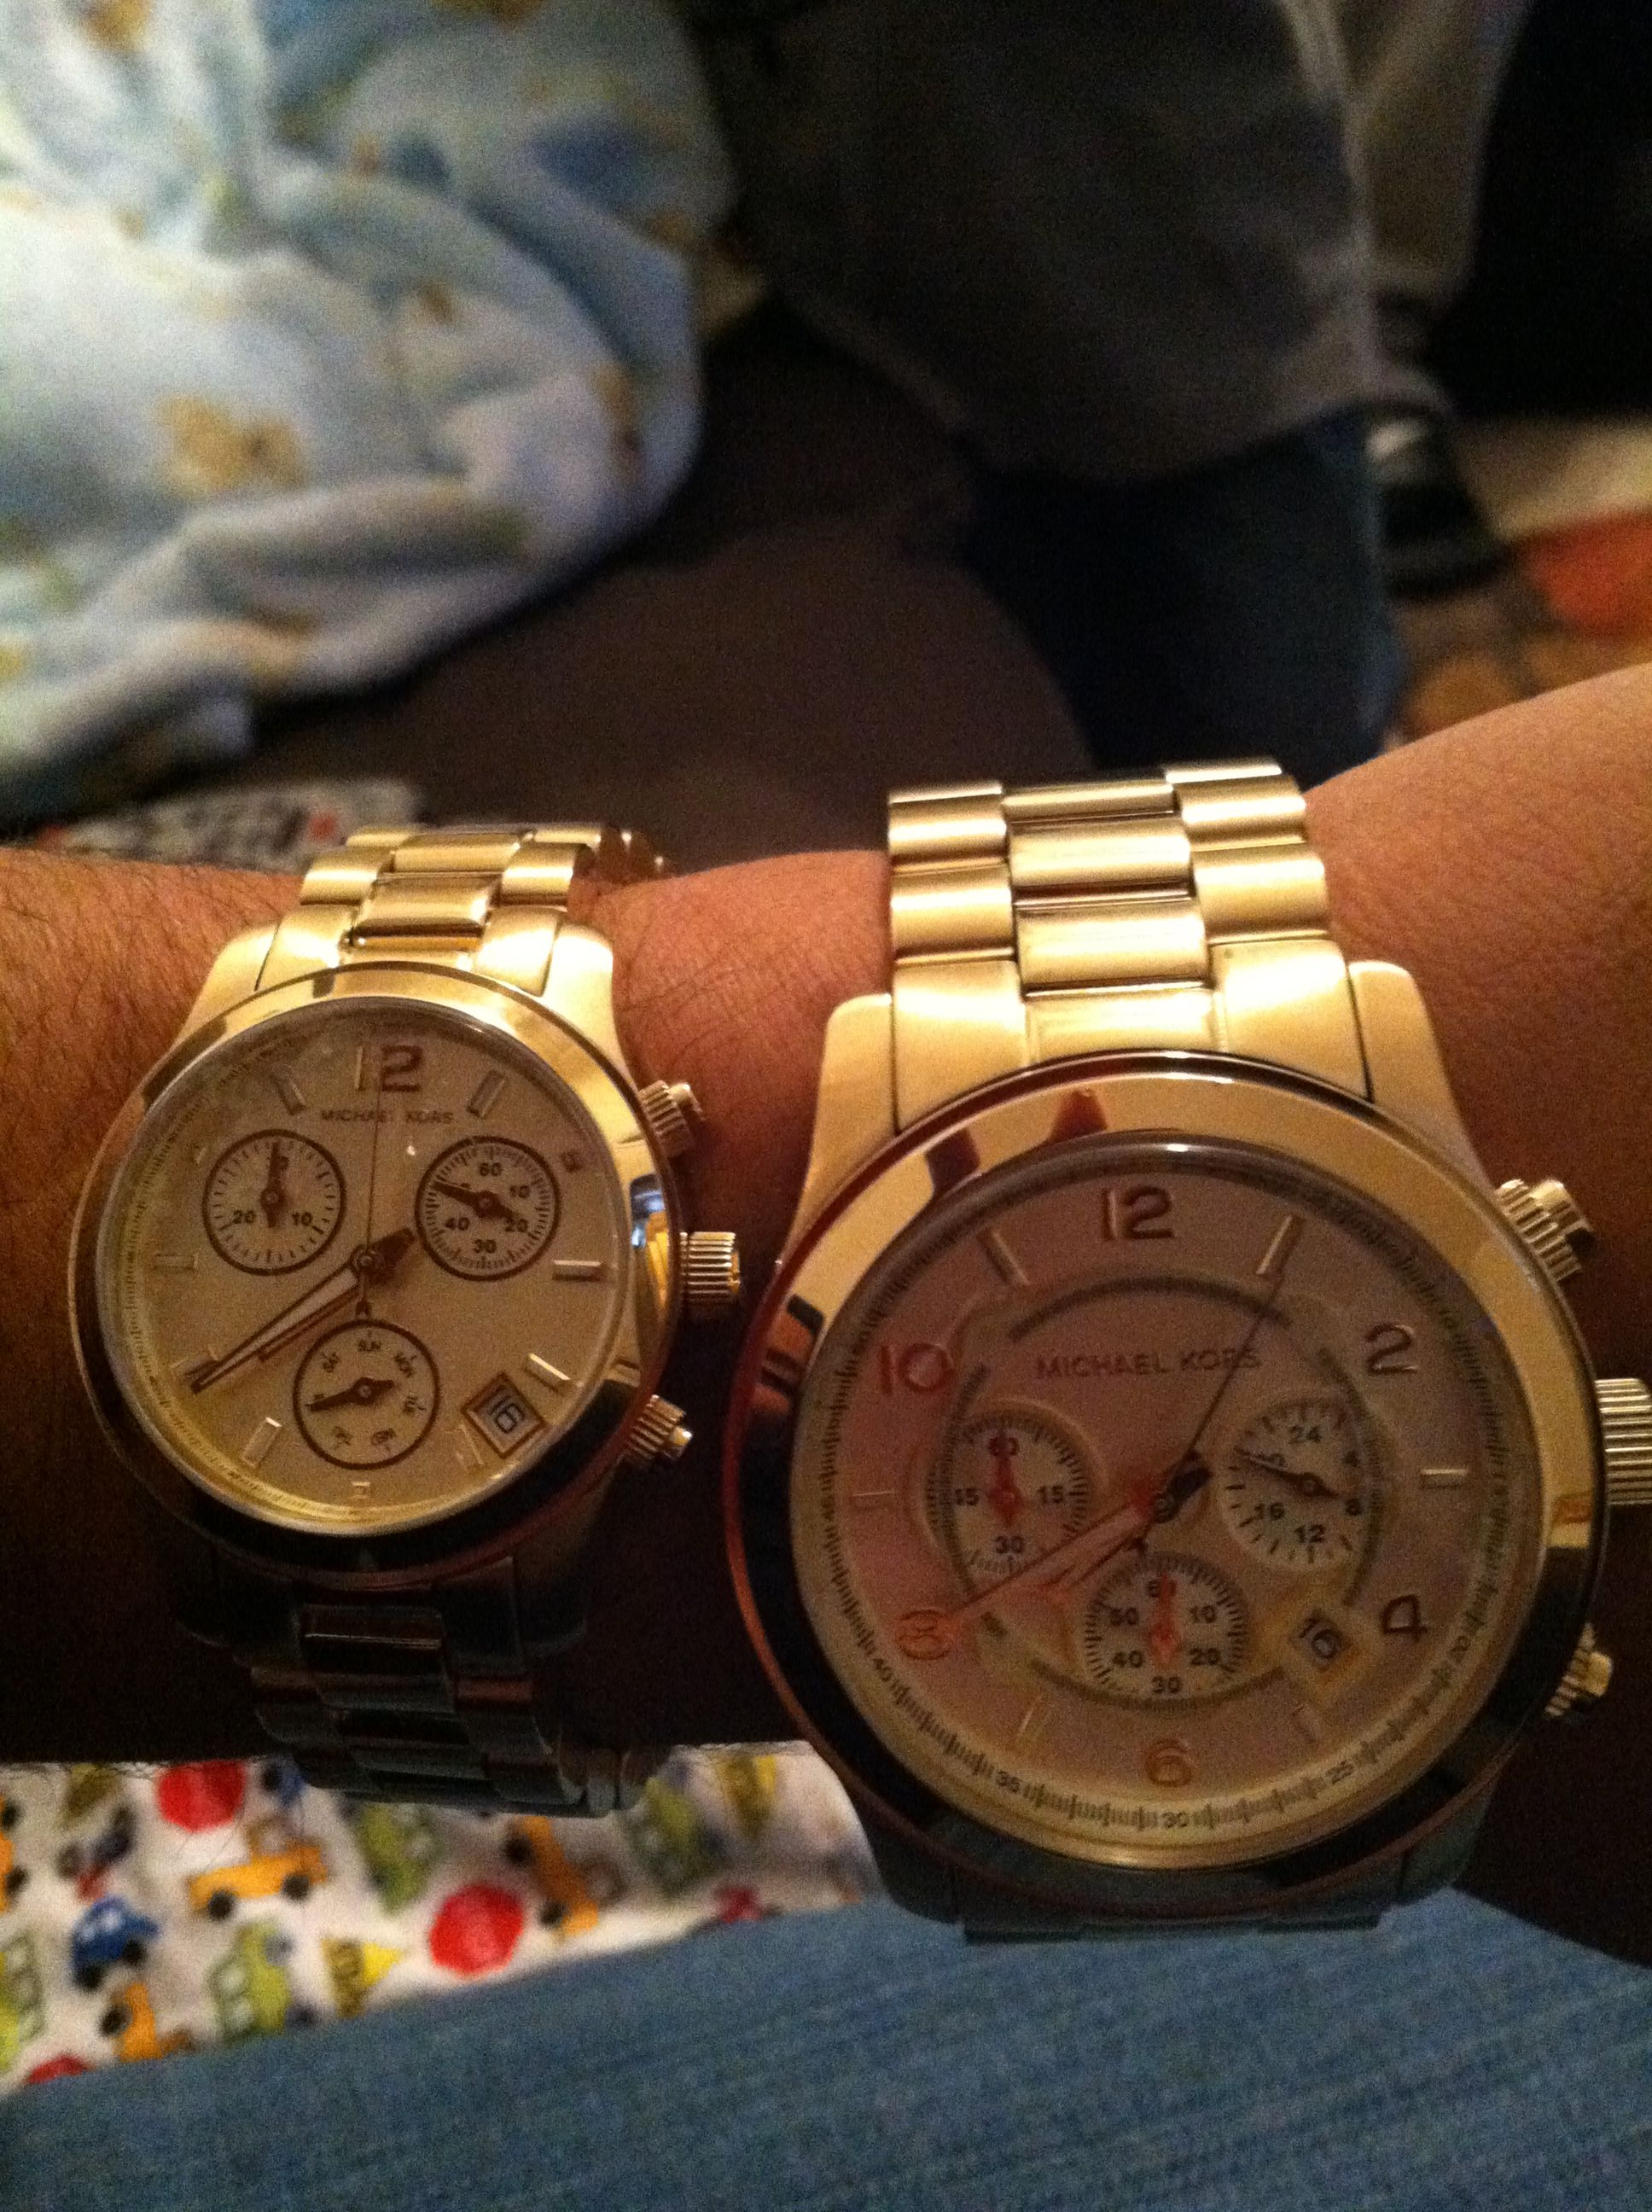 His and Hers Watches!! MK Michael kors collection